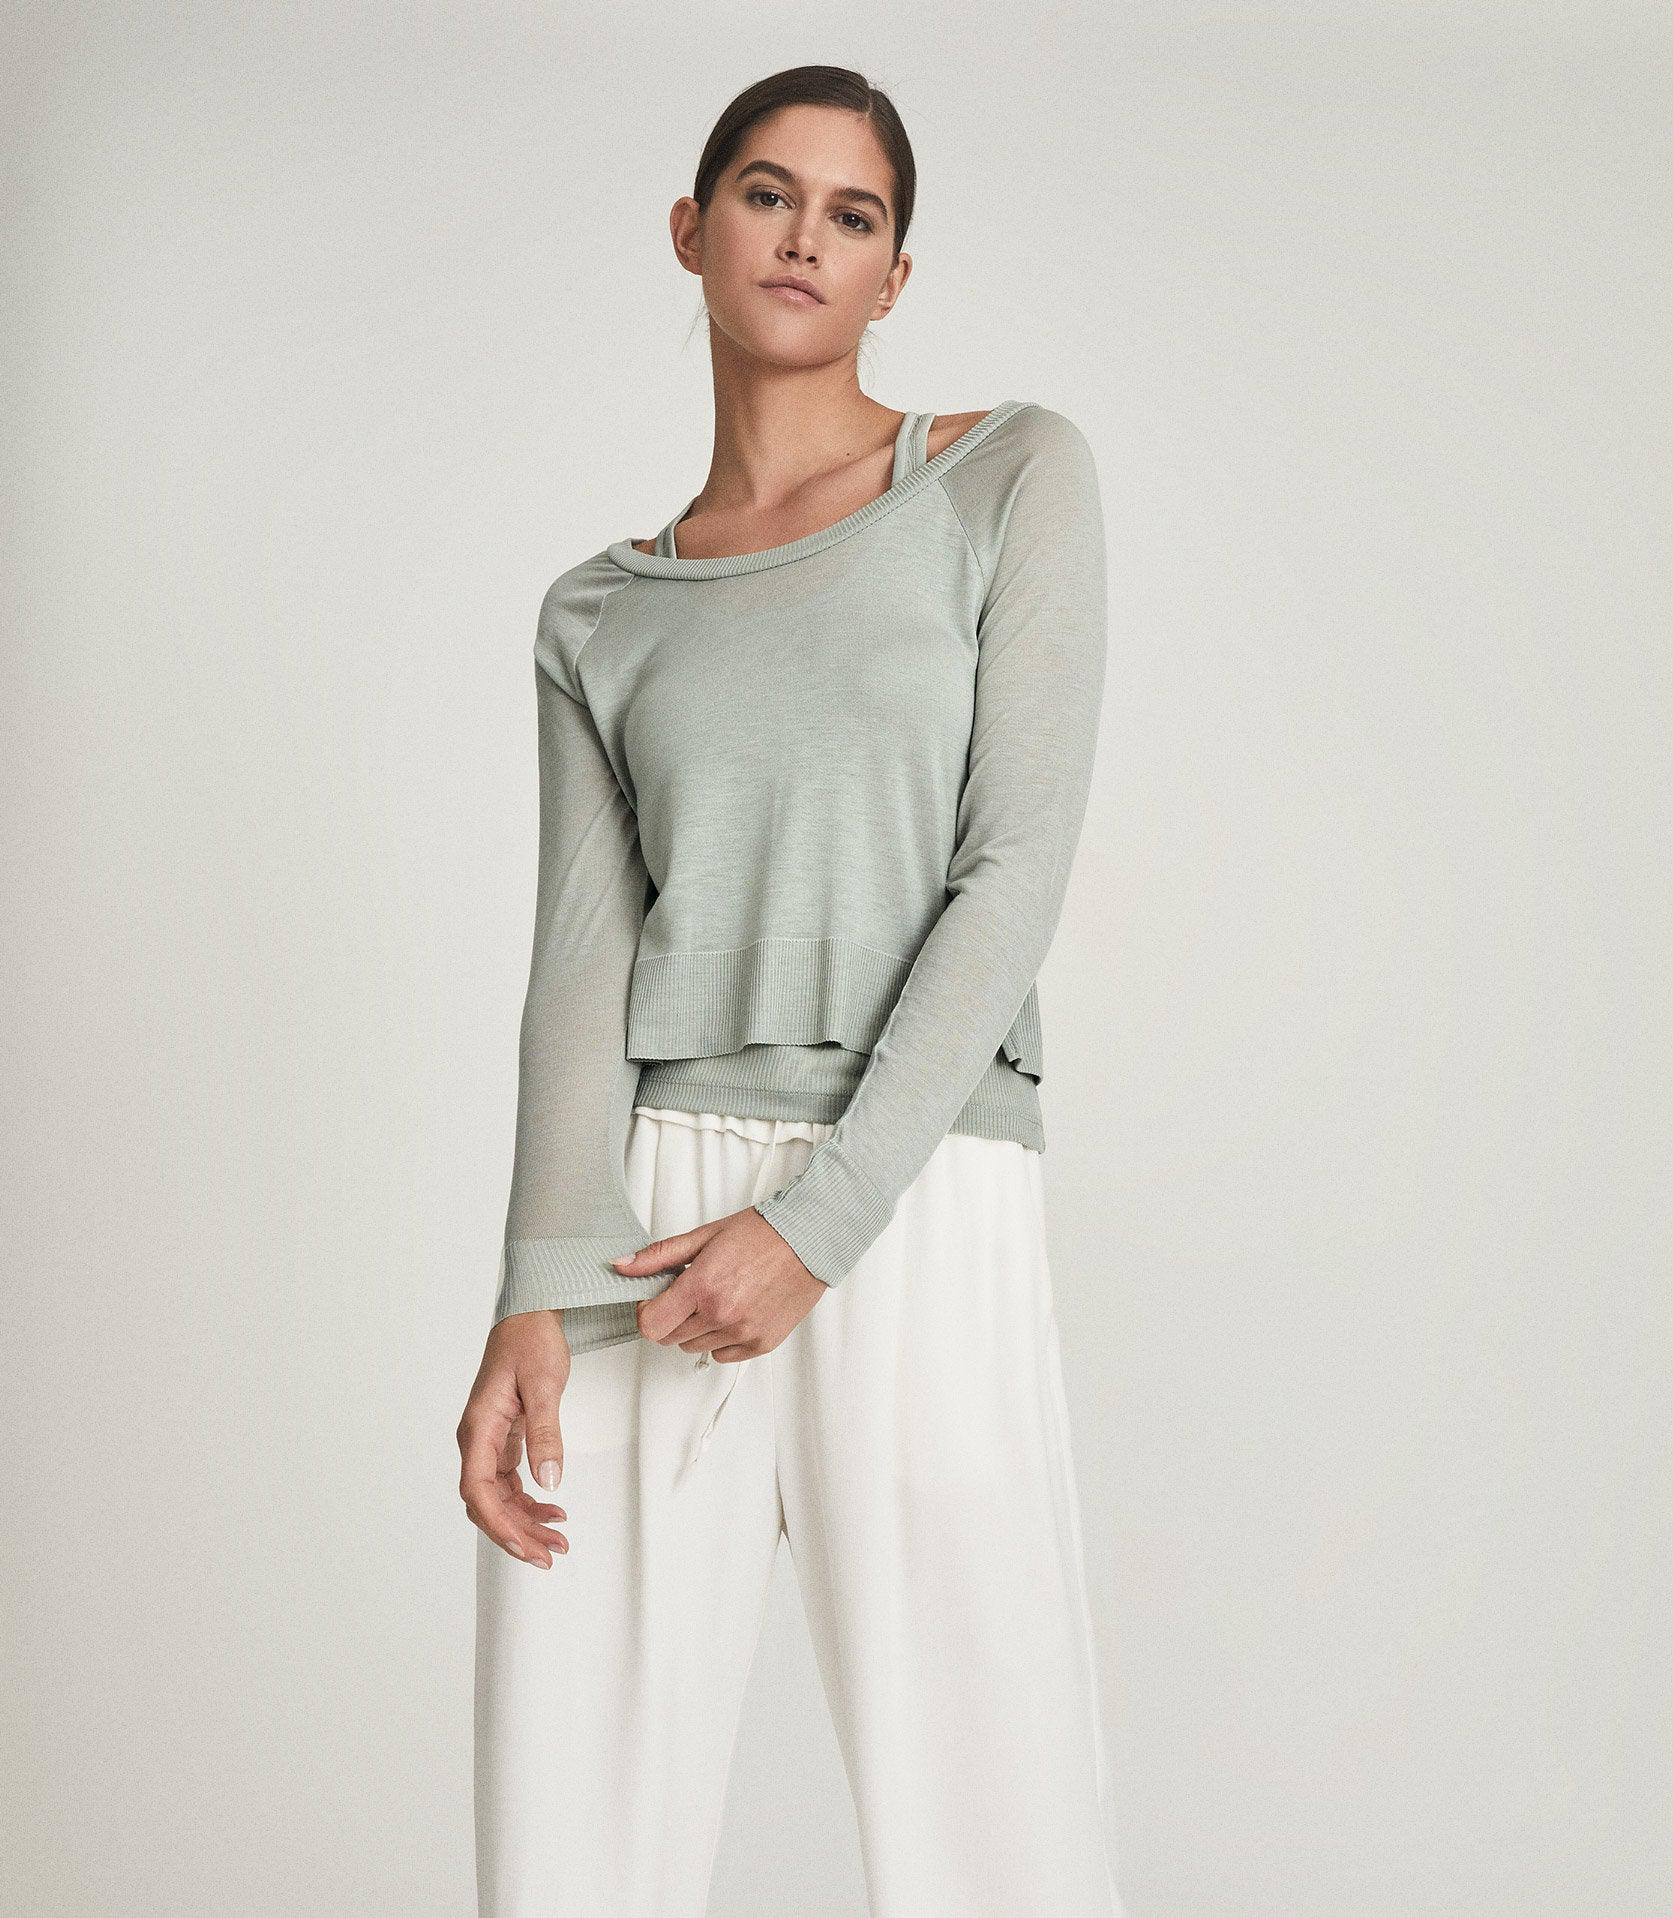 ADA - FINE JERSEY DOUBLE LAYER TOP